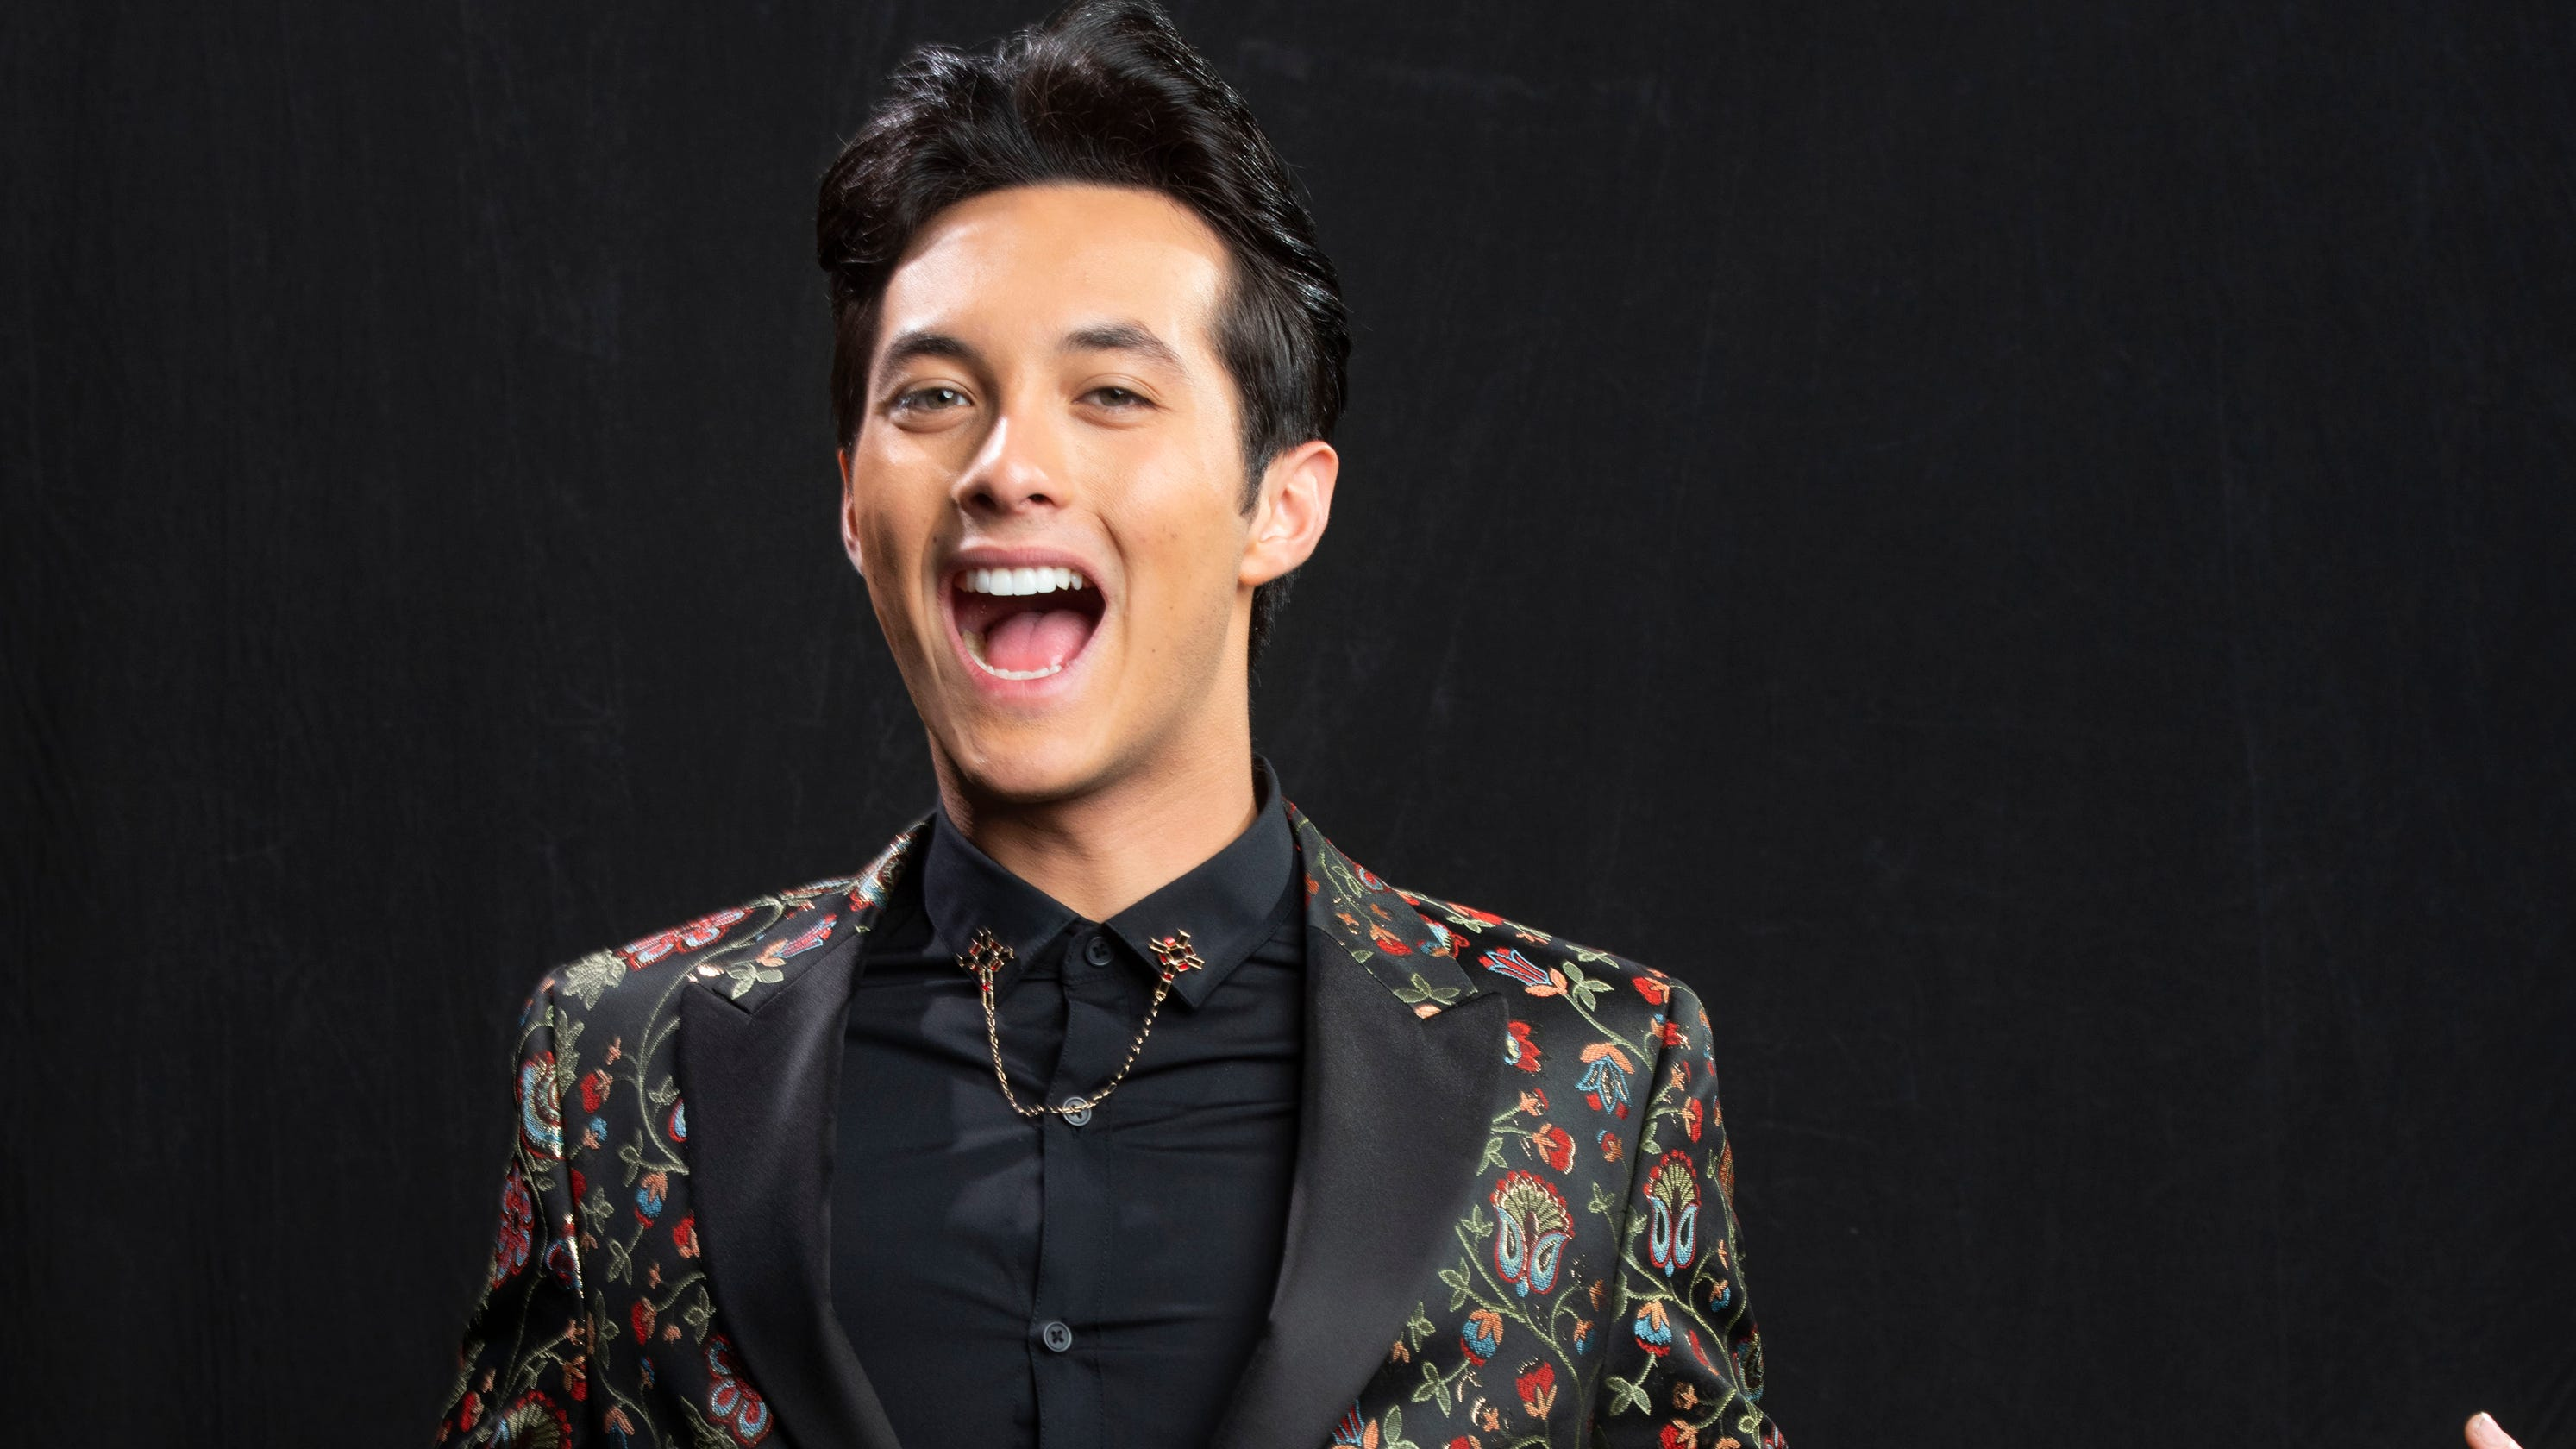 Laine Hardy Ethnicity, Race, and Nationality